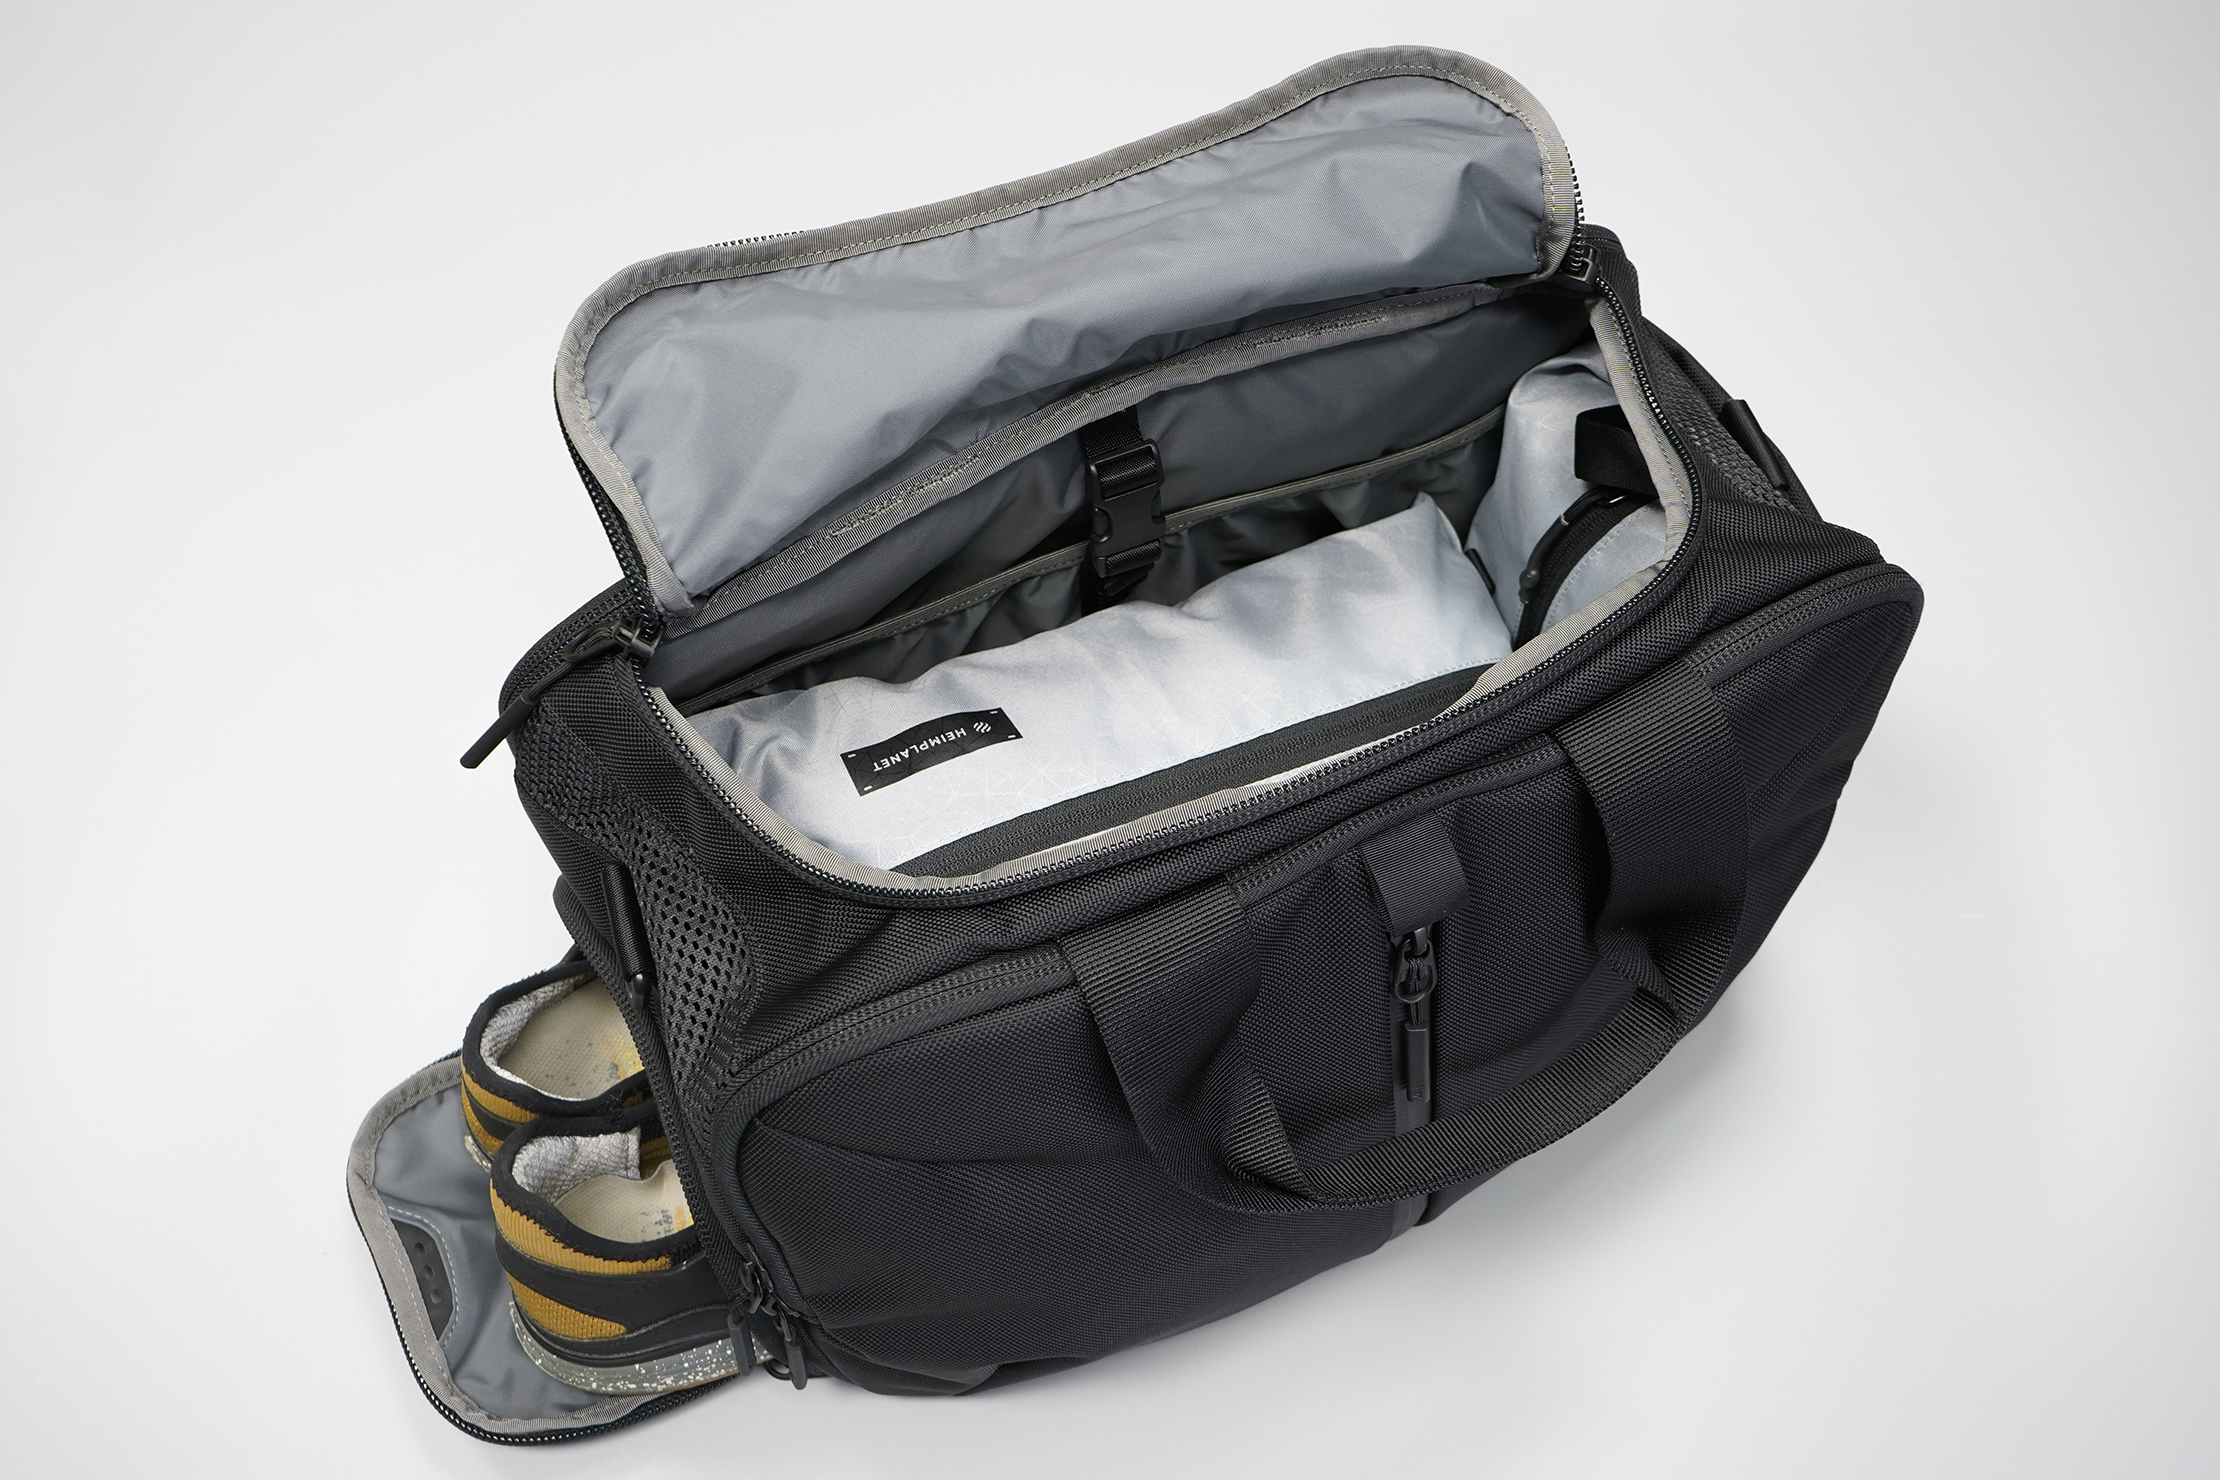 Aer Gym Duffel 3 main compartment